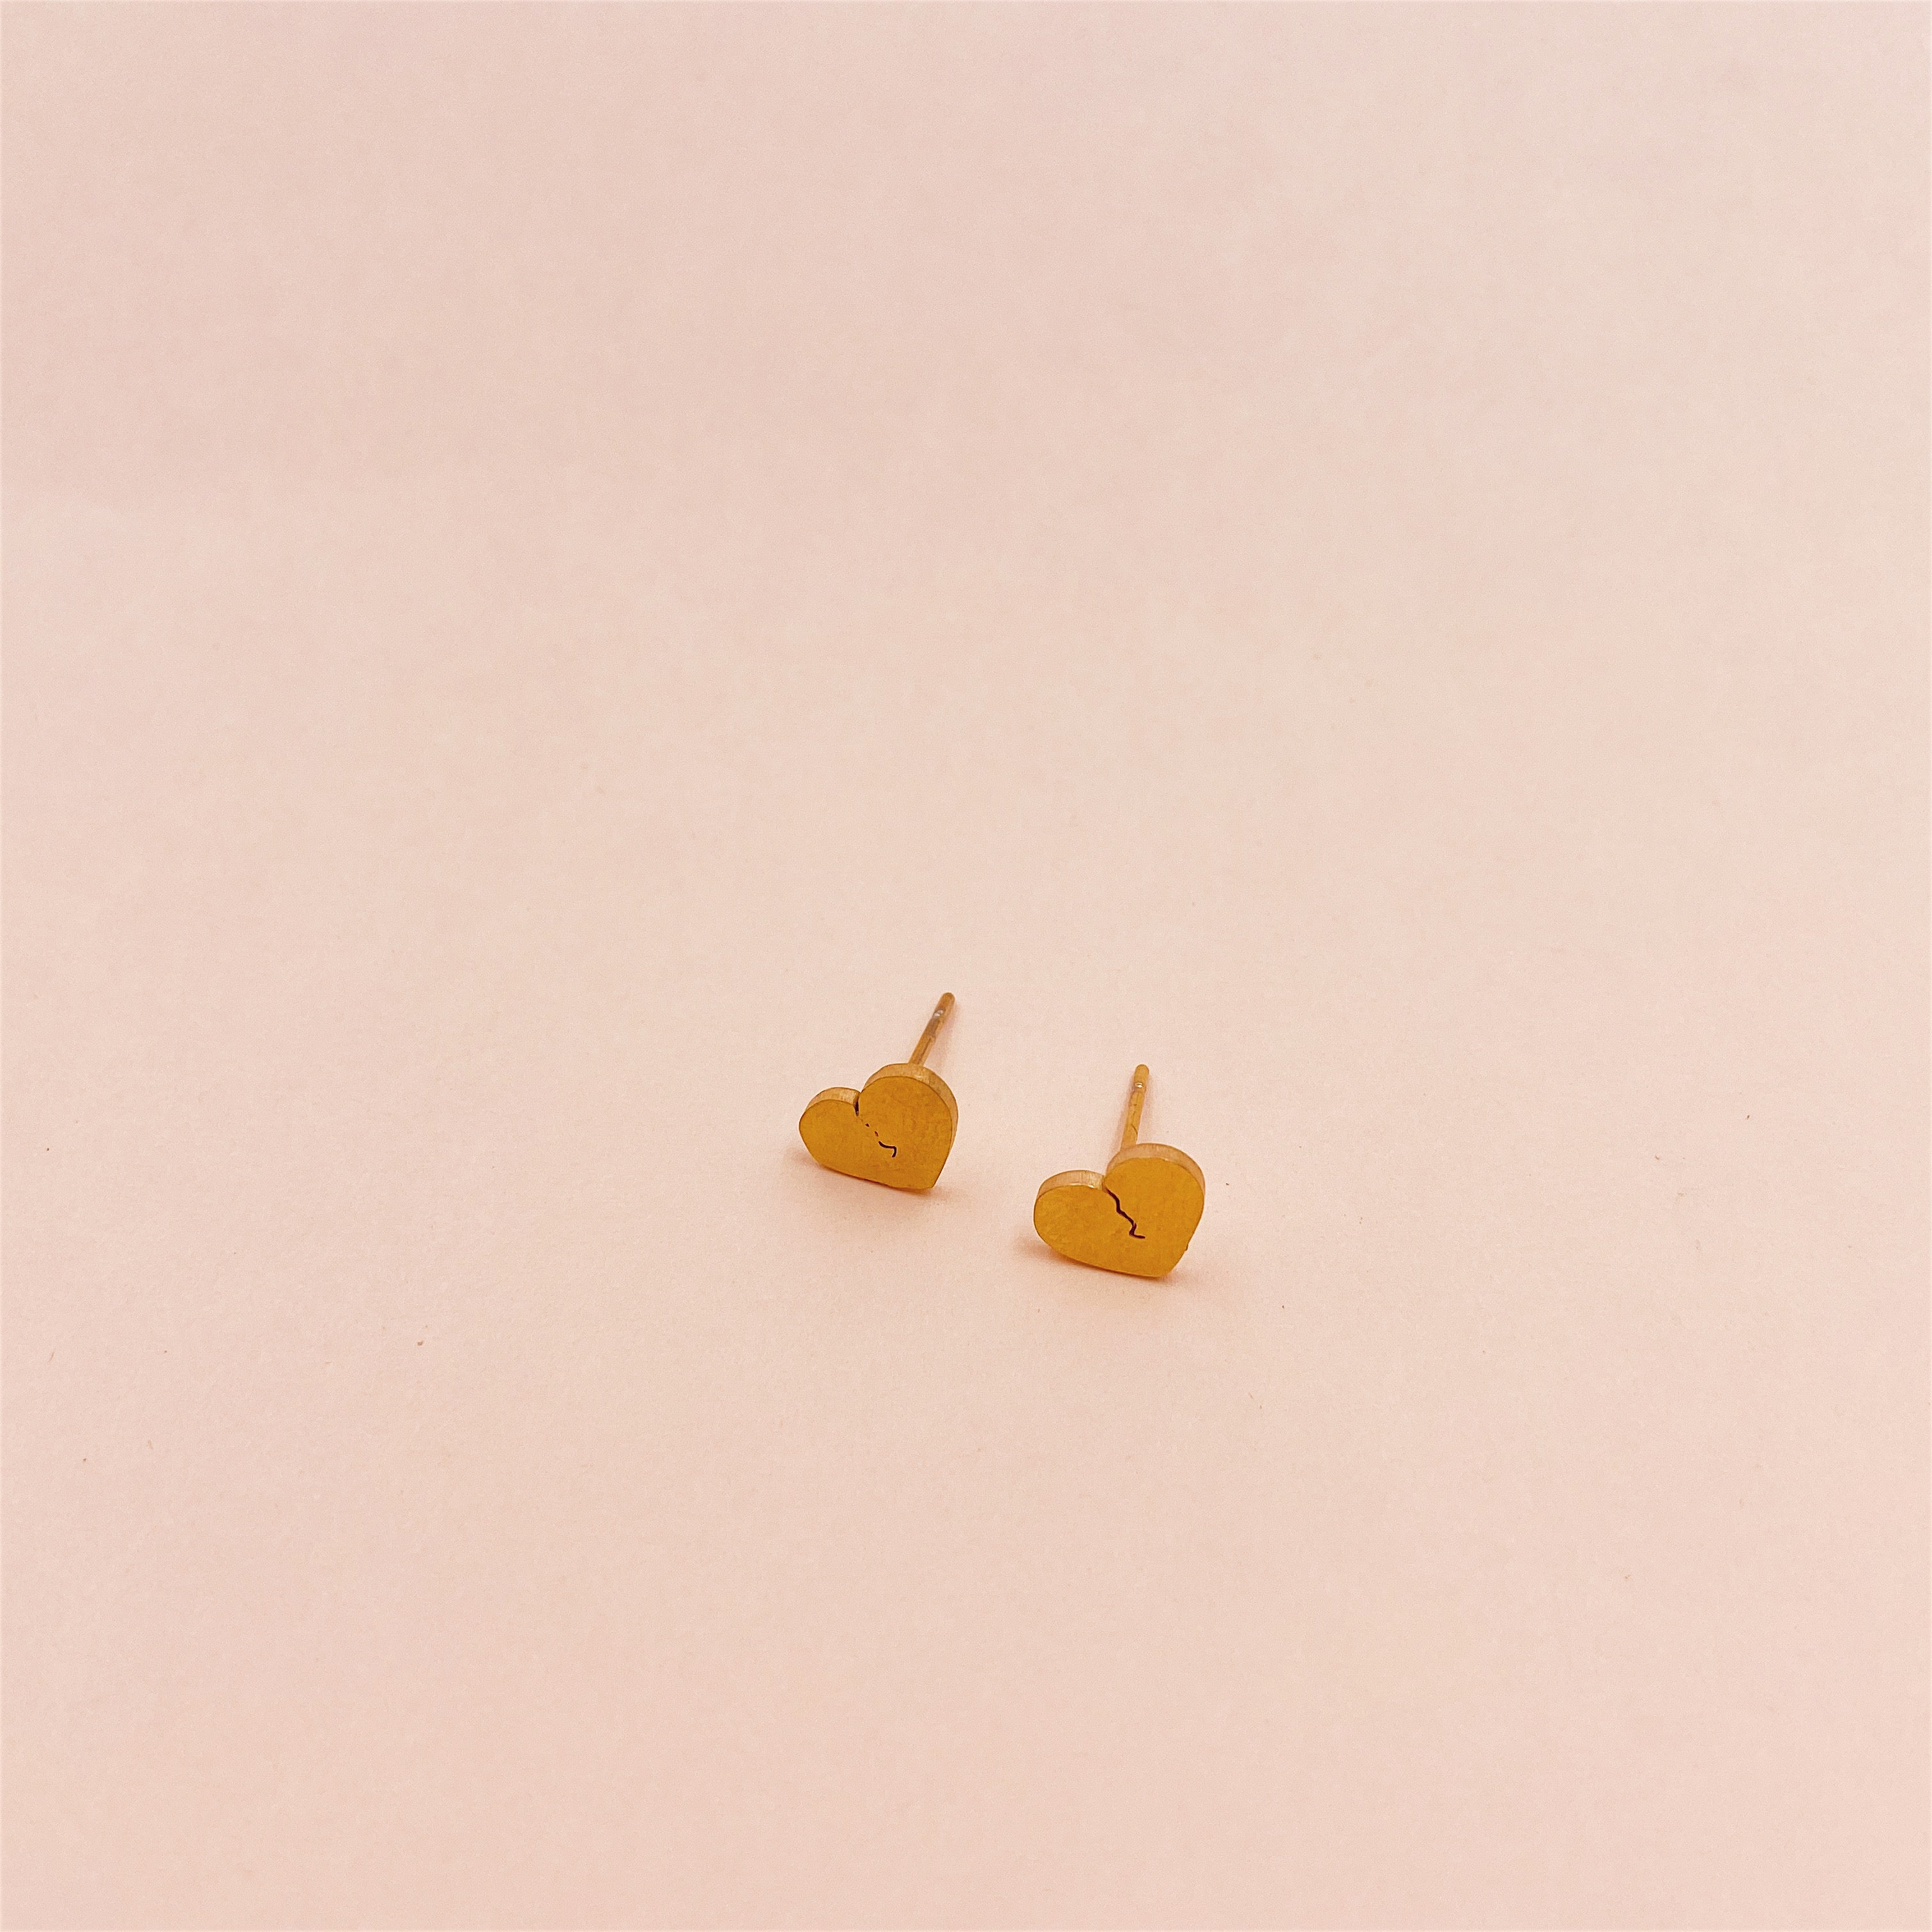 Broken Heart Stud Earrings